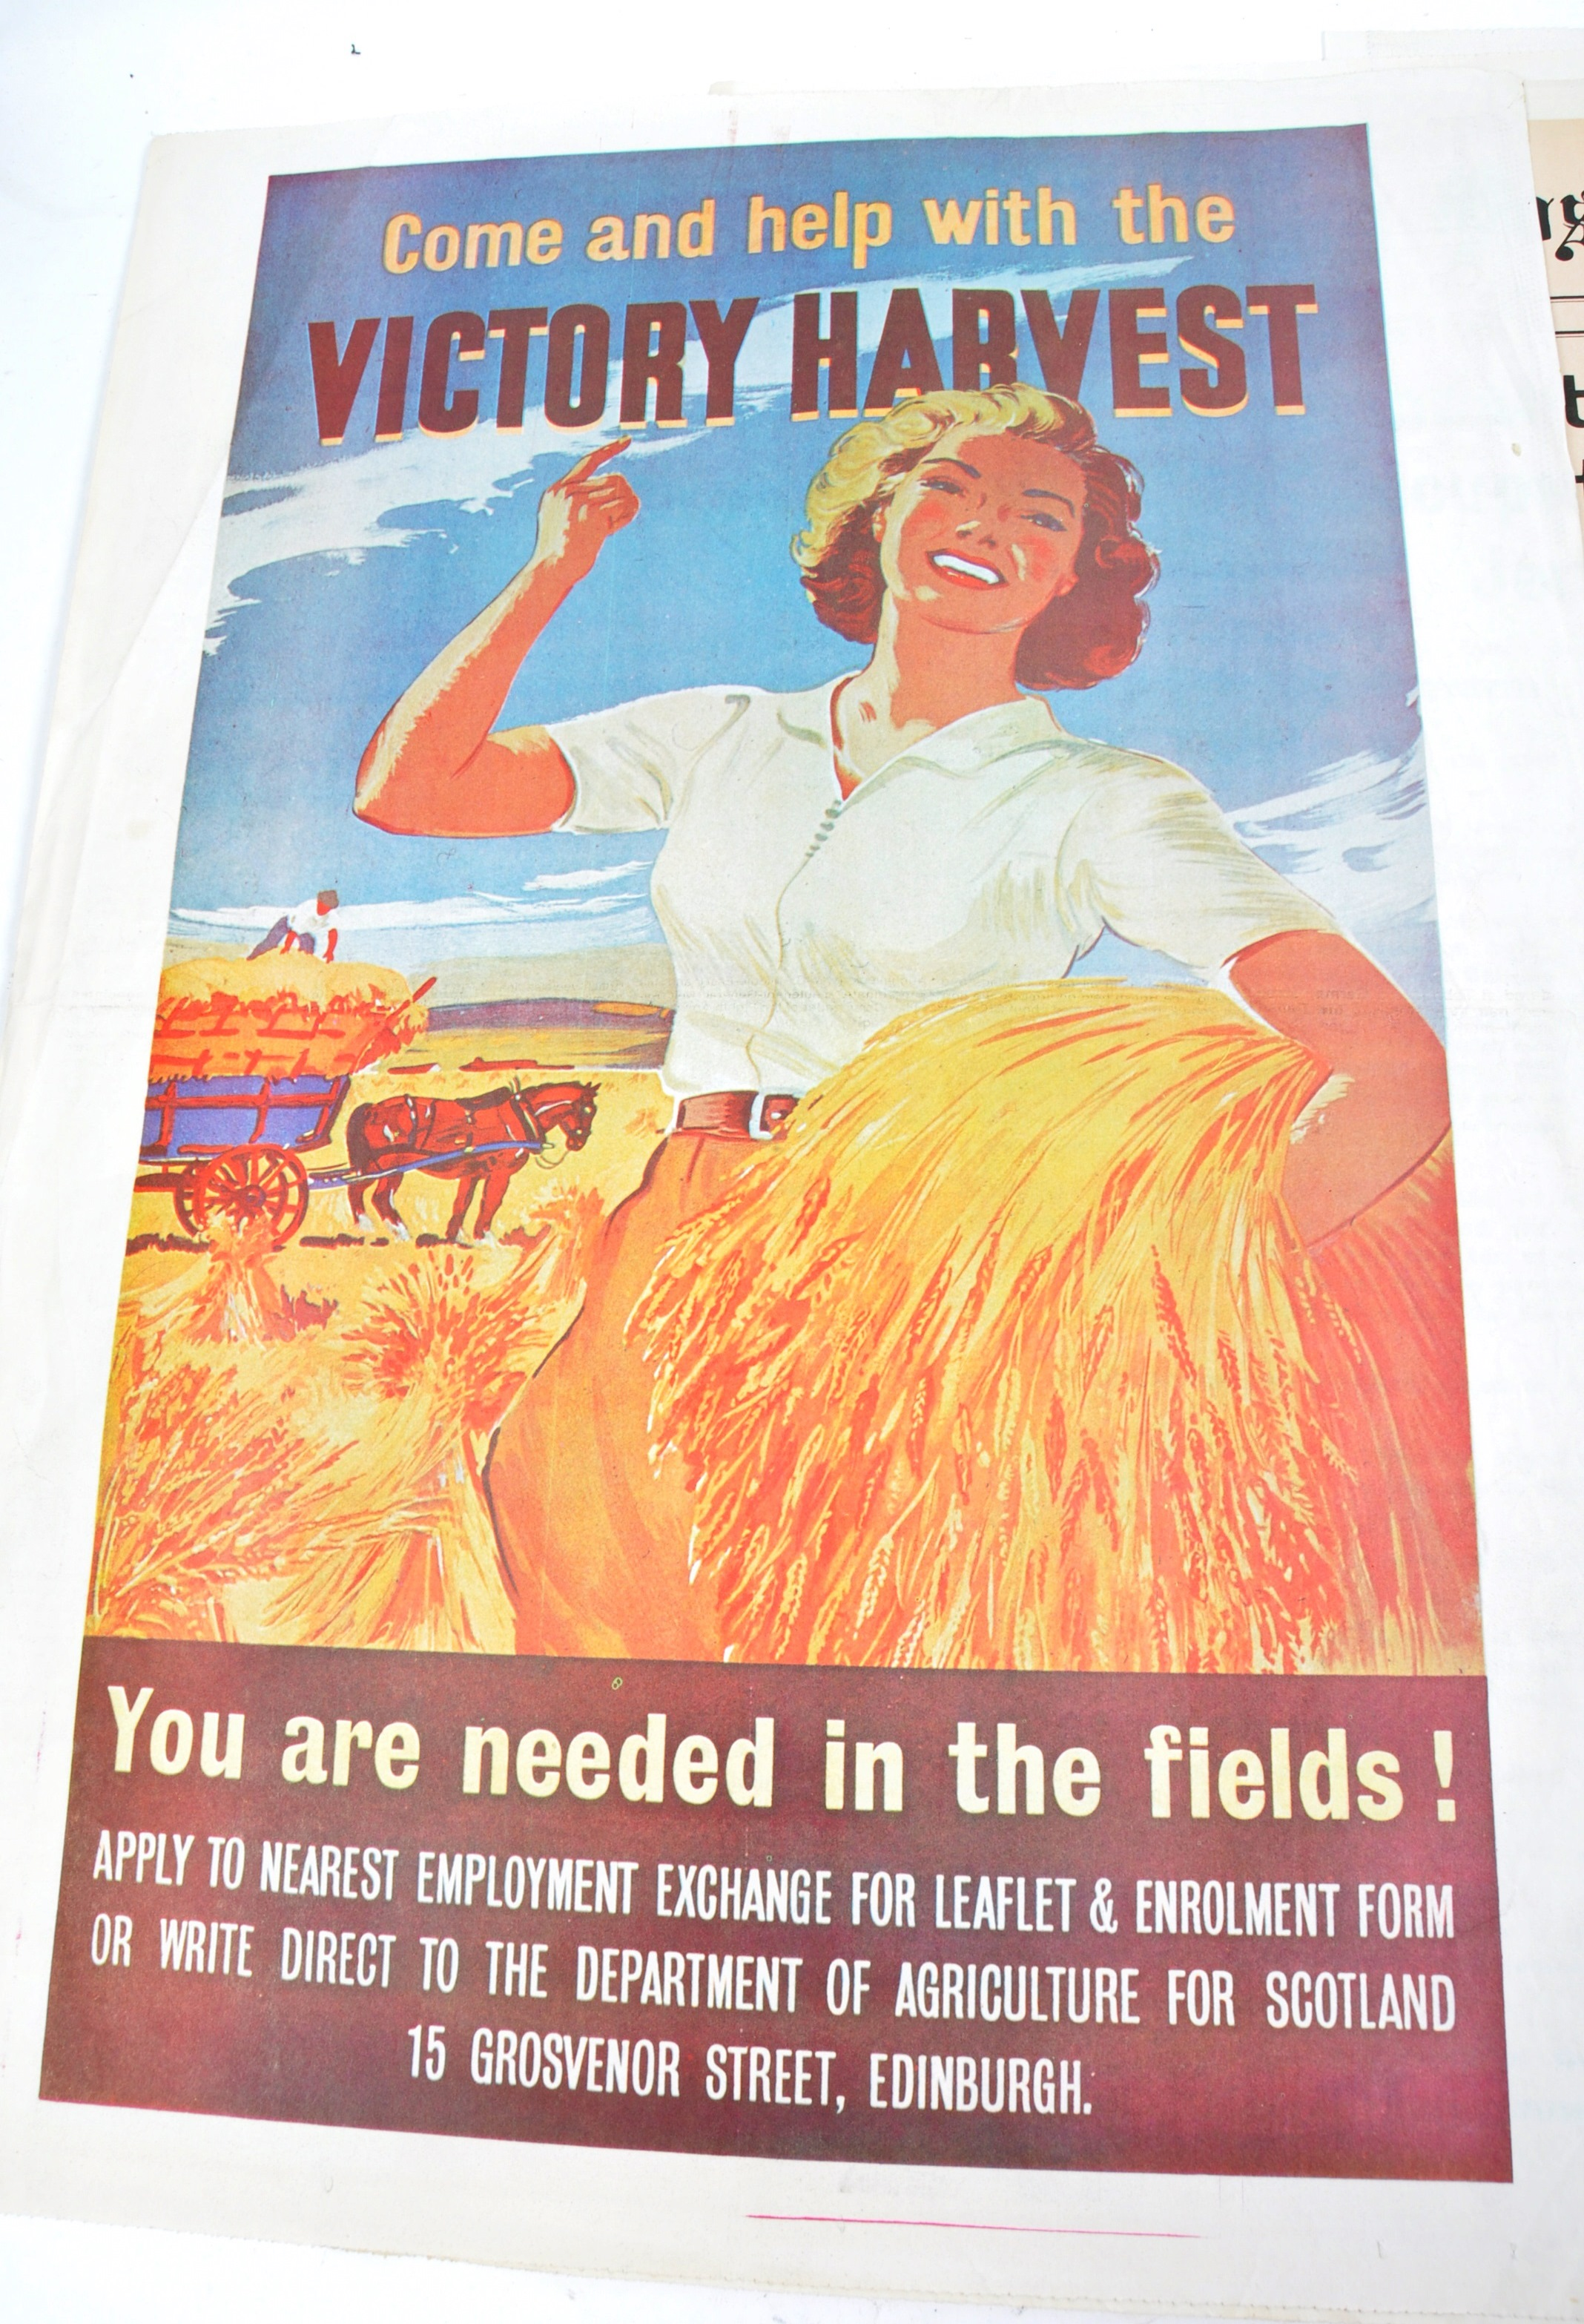 WWII SECOND WORLD WAR POSTERS - ENGLISH, GERMAN & OTHERS - Image 2 of 8